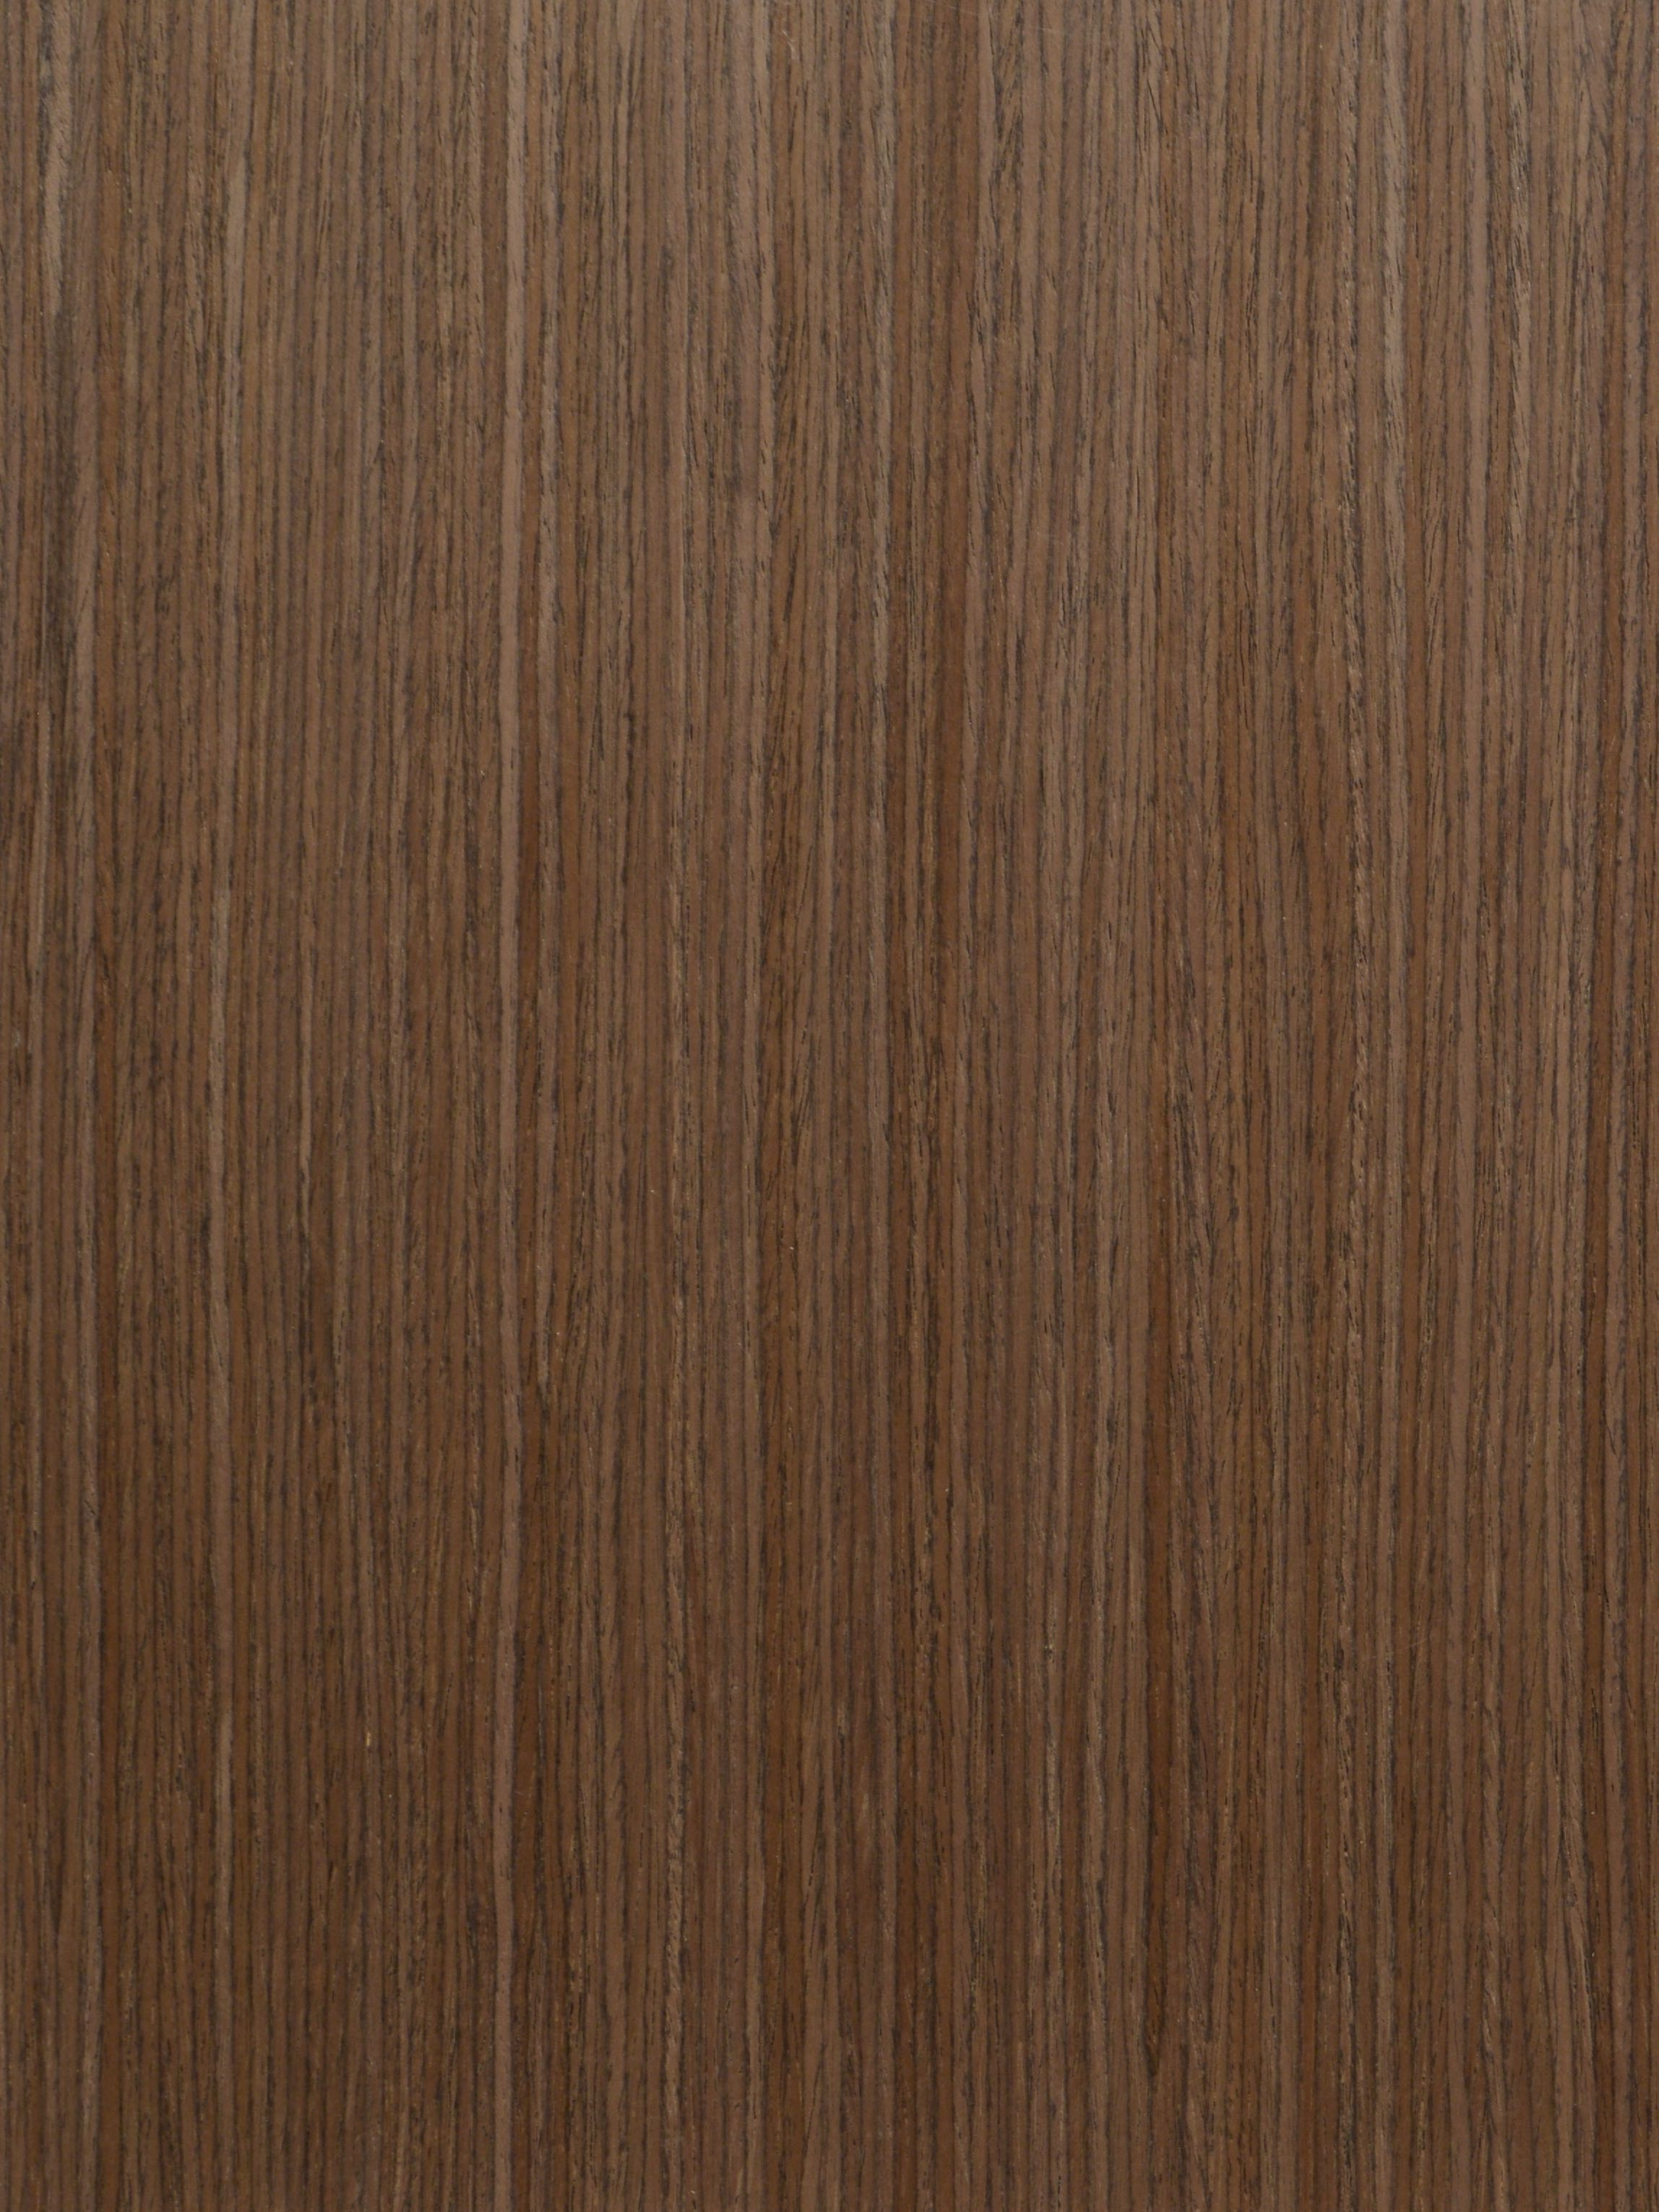 Wood Veneer Cabinet Doors Reconstituted Veneer Kitchen Cabinet Doors By Allstyle